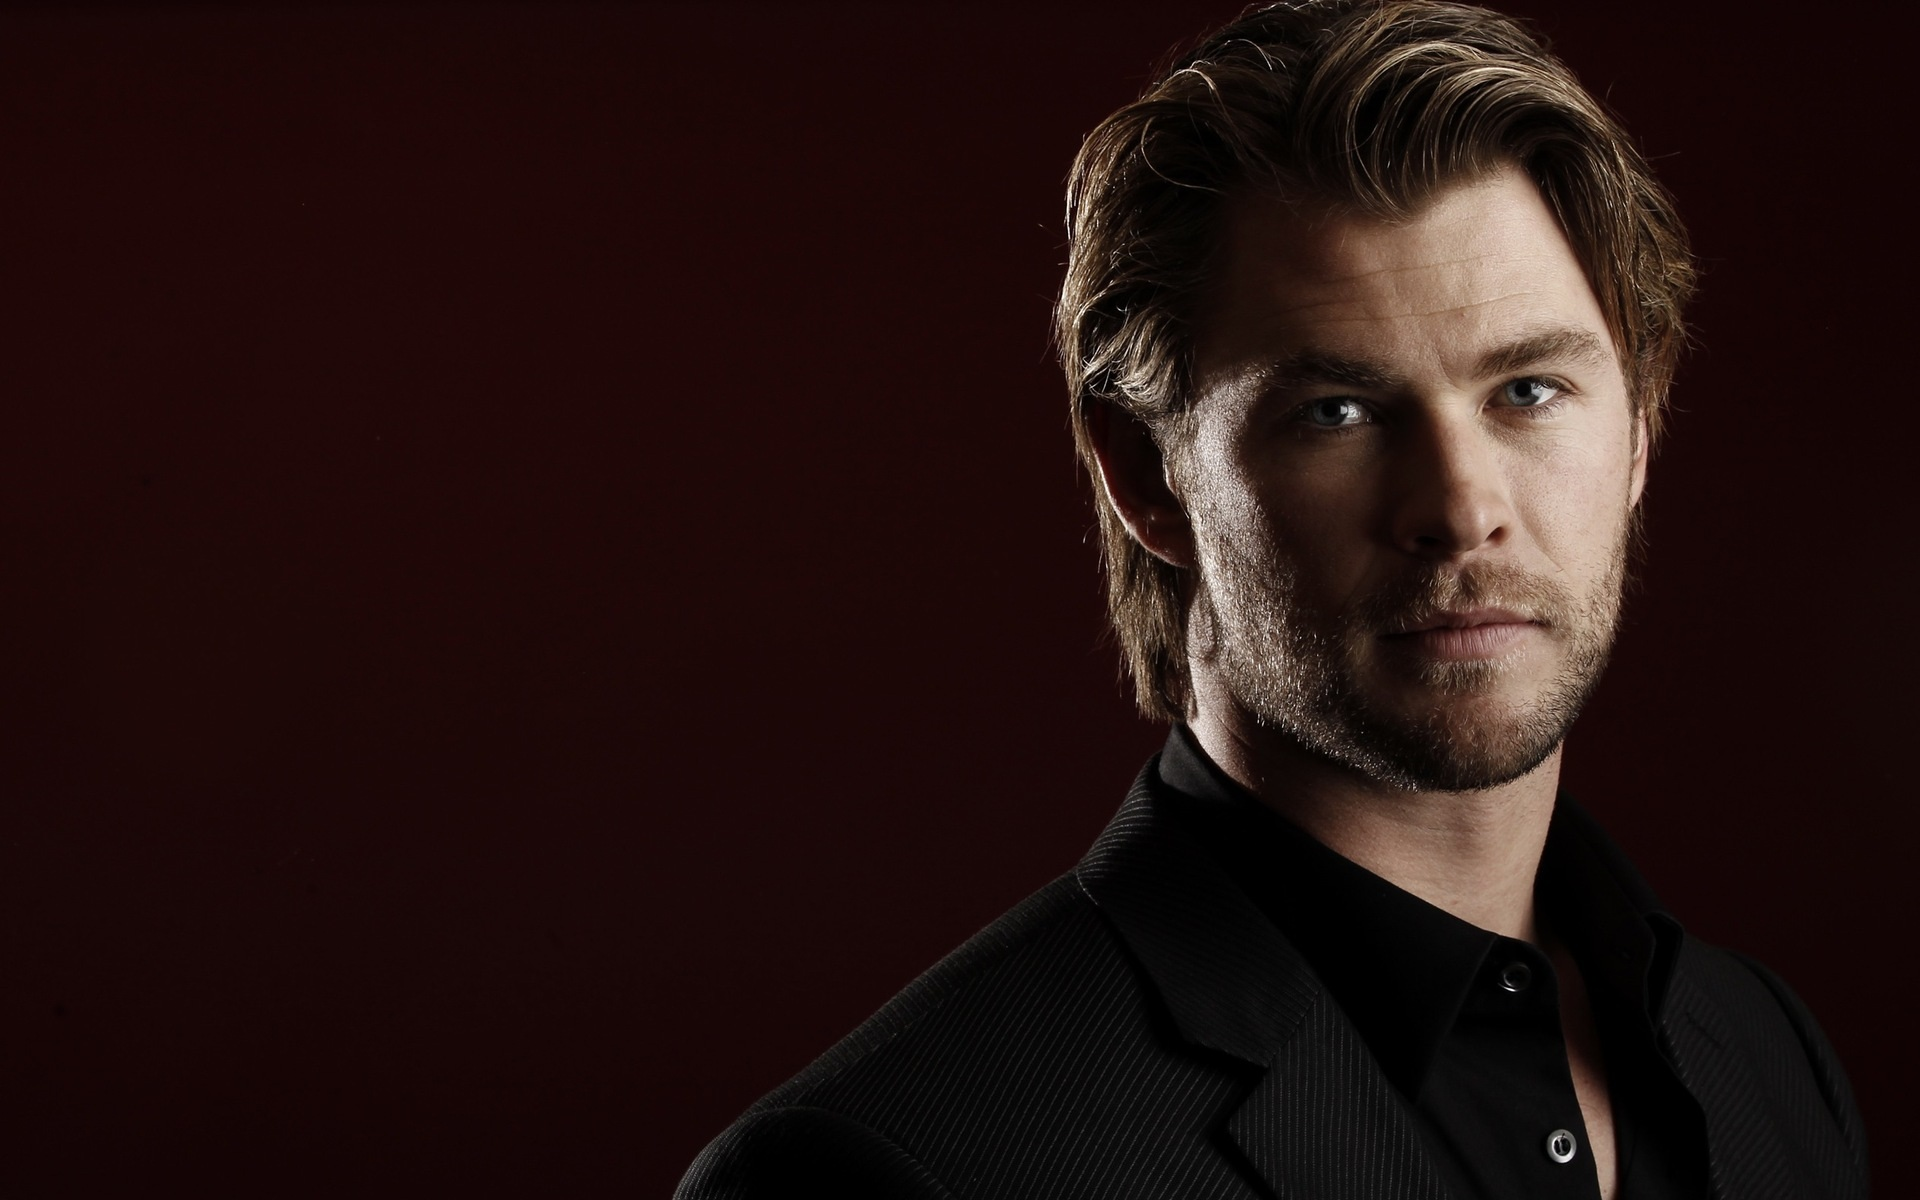 chris hemsworth wallpapers high resolution and quality download. Black Bedroom Furniture Sets. Home Design Ideas